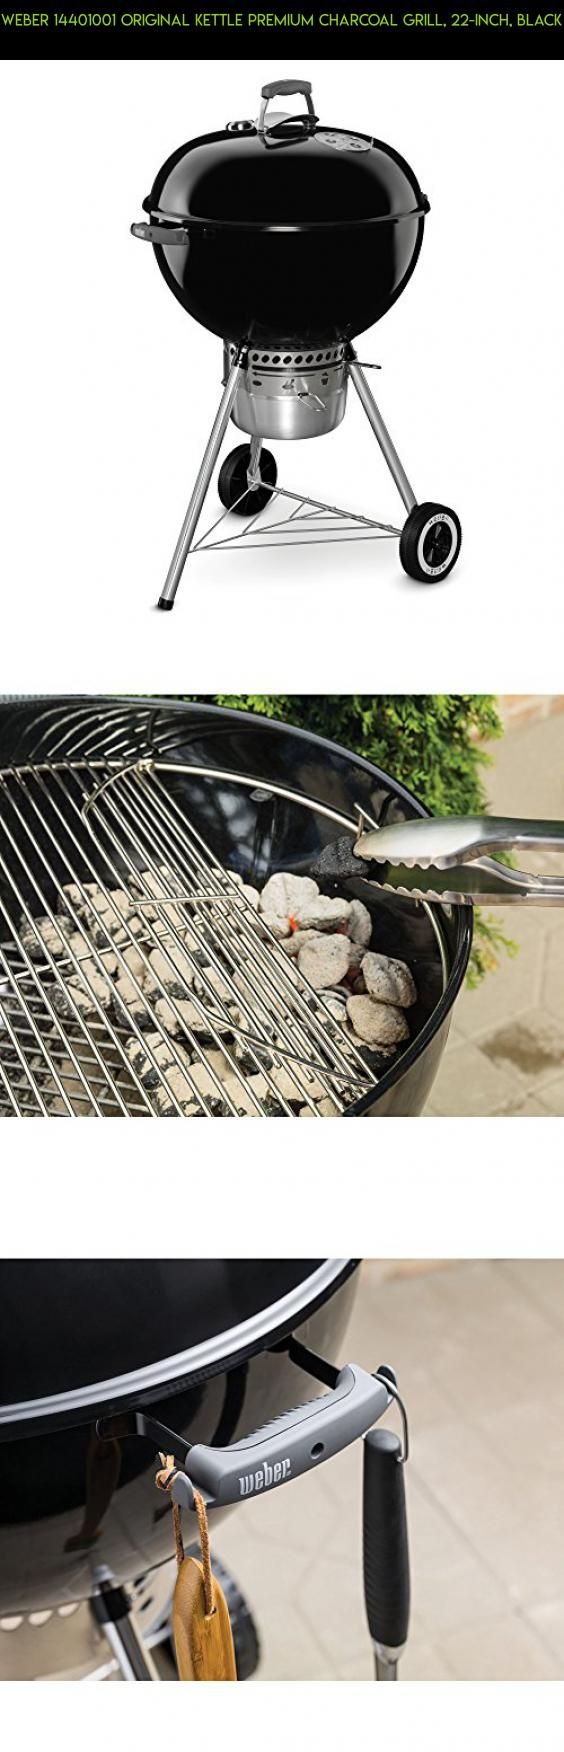 Weber 14401001 Original Kettle Premium Charcoal Grill, 22-Inch, Black #grills #products #kit #parts #technology #drone #gadgets #plans #weber #tech #racing #fpv #shopping #camera